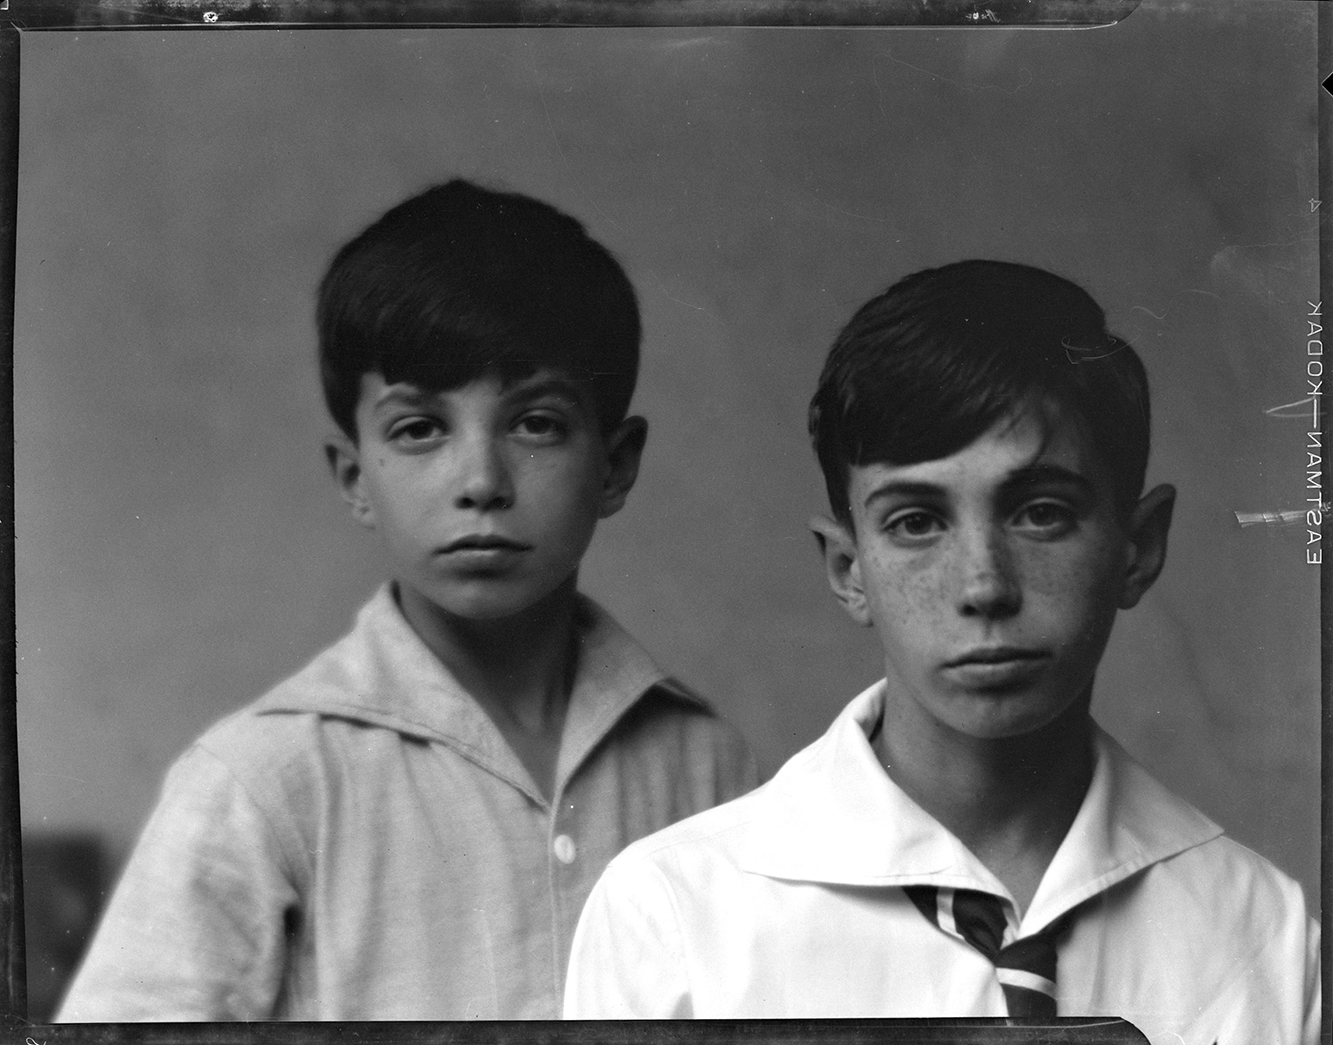 Black and white image of 2 young boys